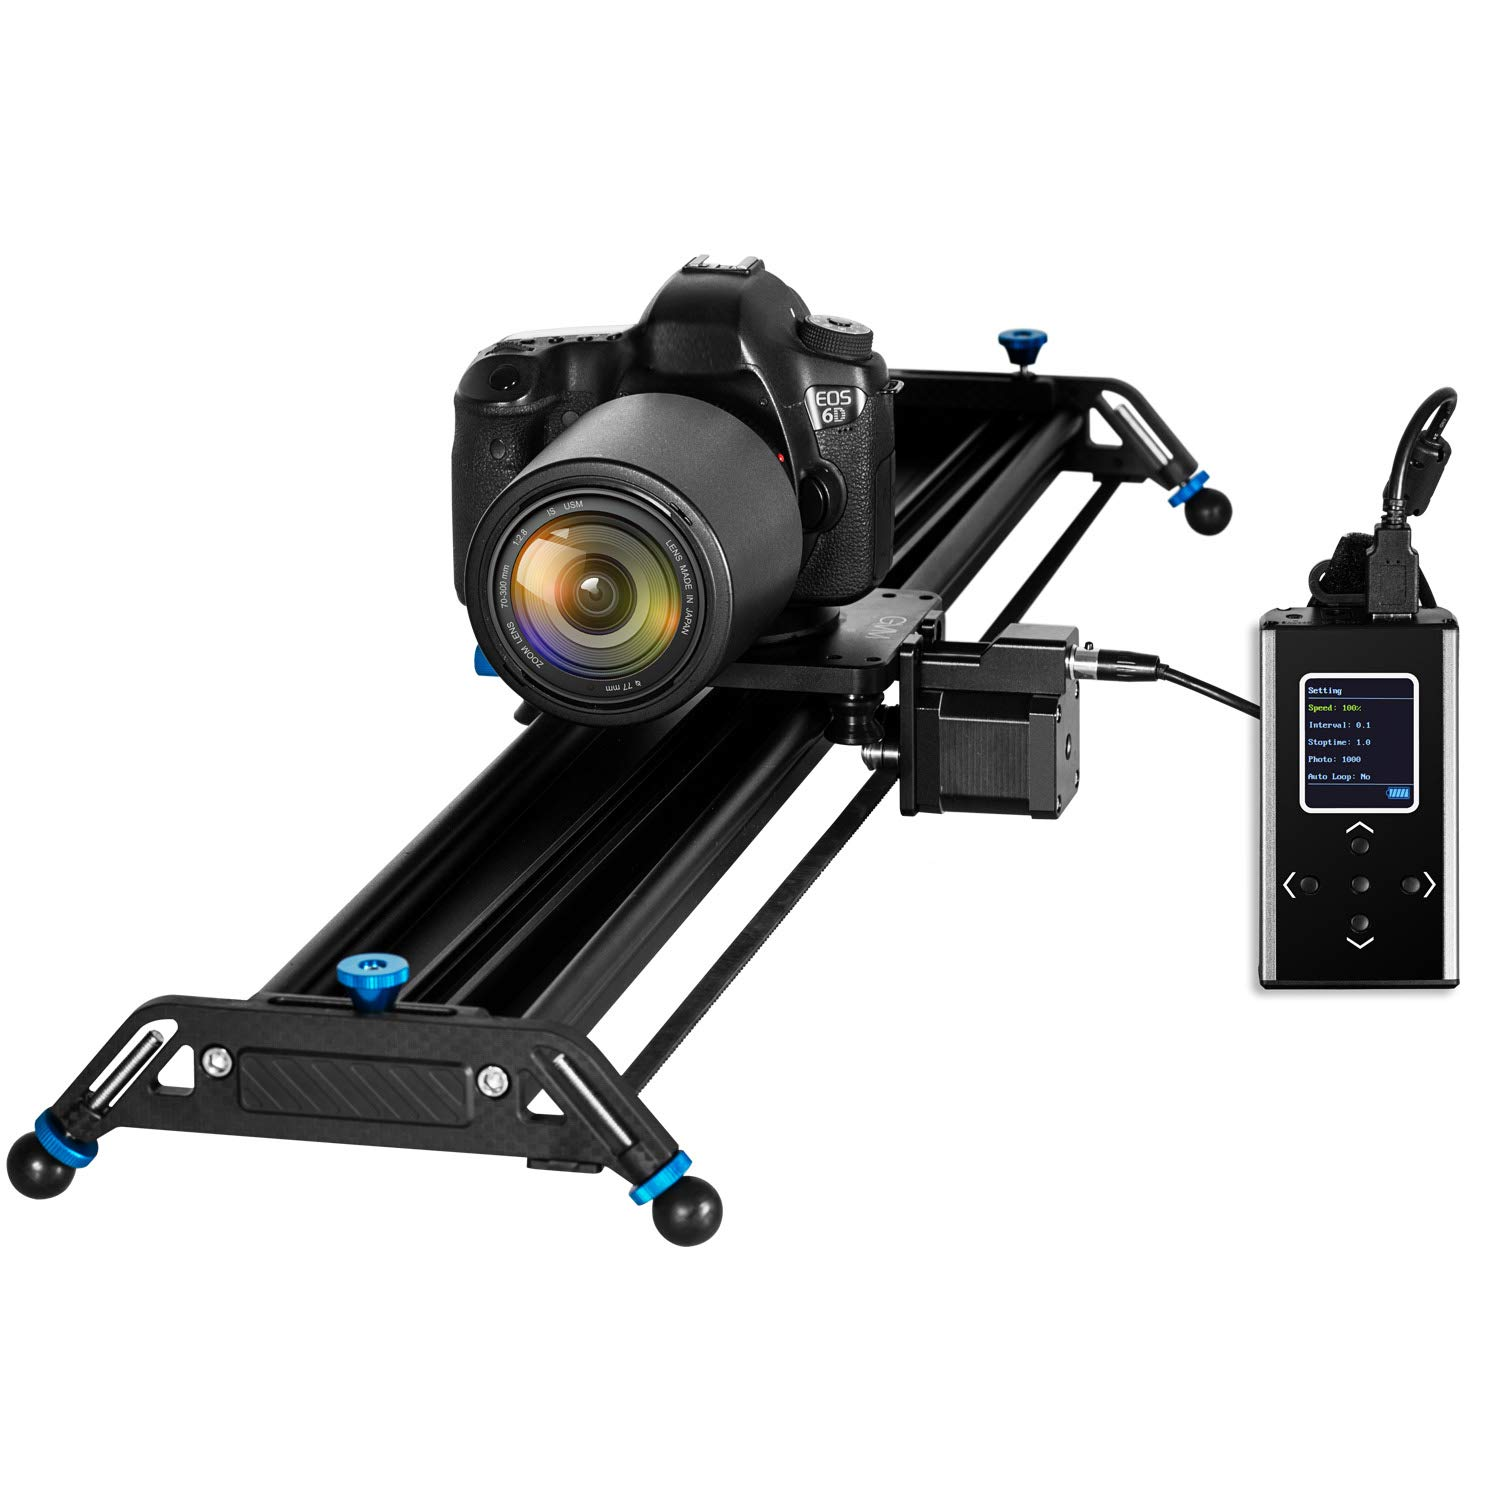 GVM Motorized Camera Slider, 31'' Aluminum Alloy Track Dolly Rail Camera Slider with Tracking Shooting, 120 Degree Panoramic Shooting and Time-Lapse Photography for Most DSLR Cameras, Load up to 22lbs by GVM Great Video Maker